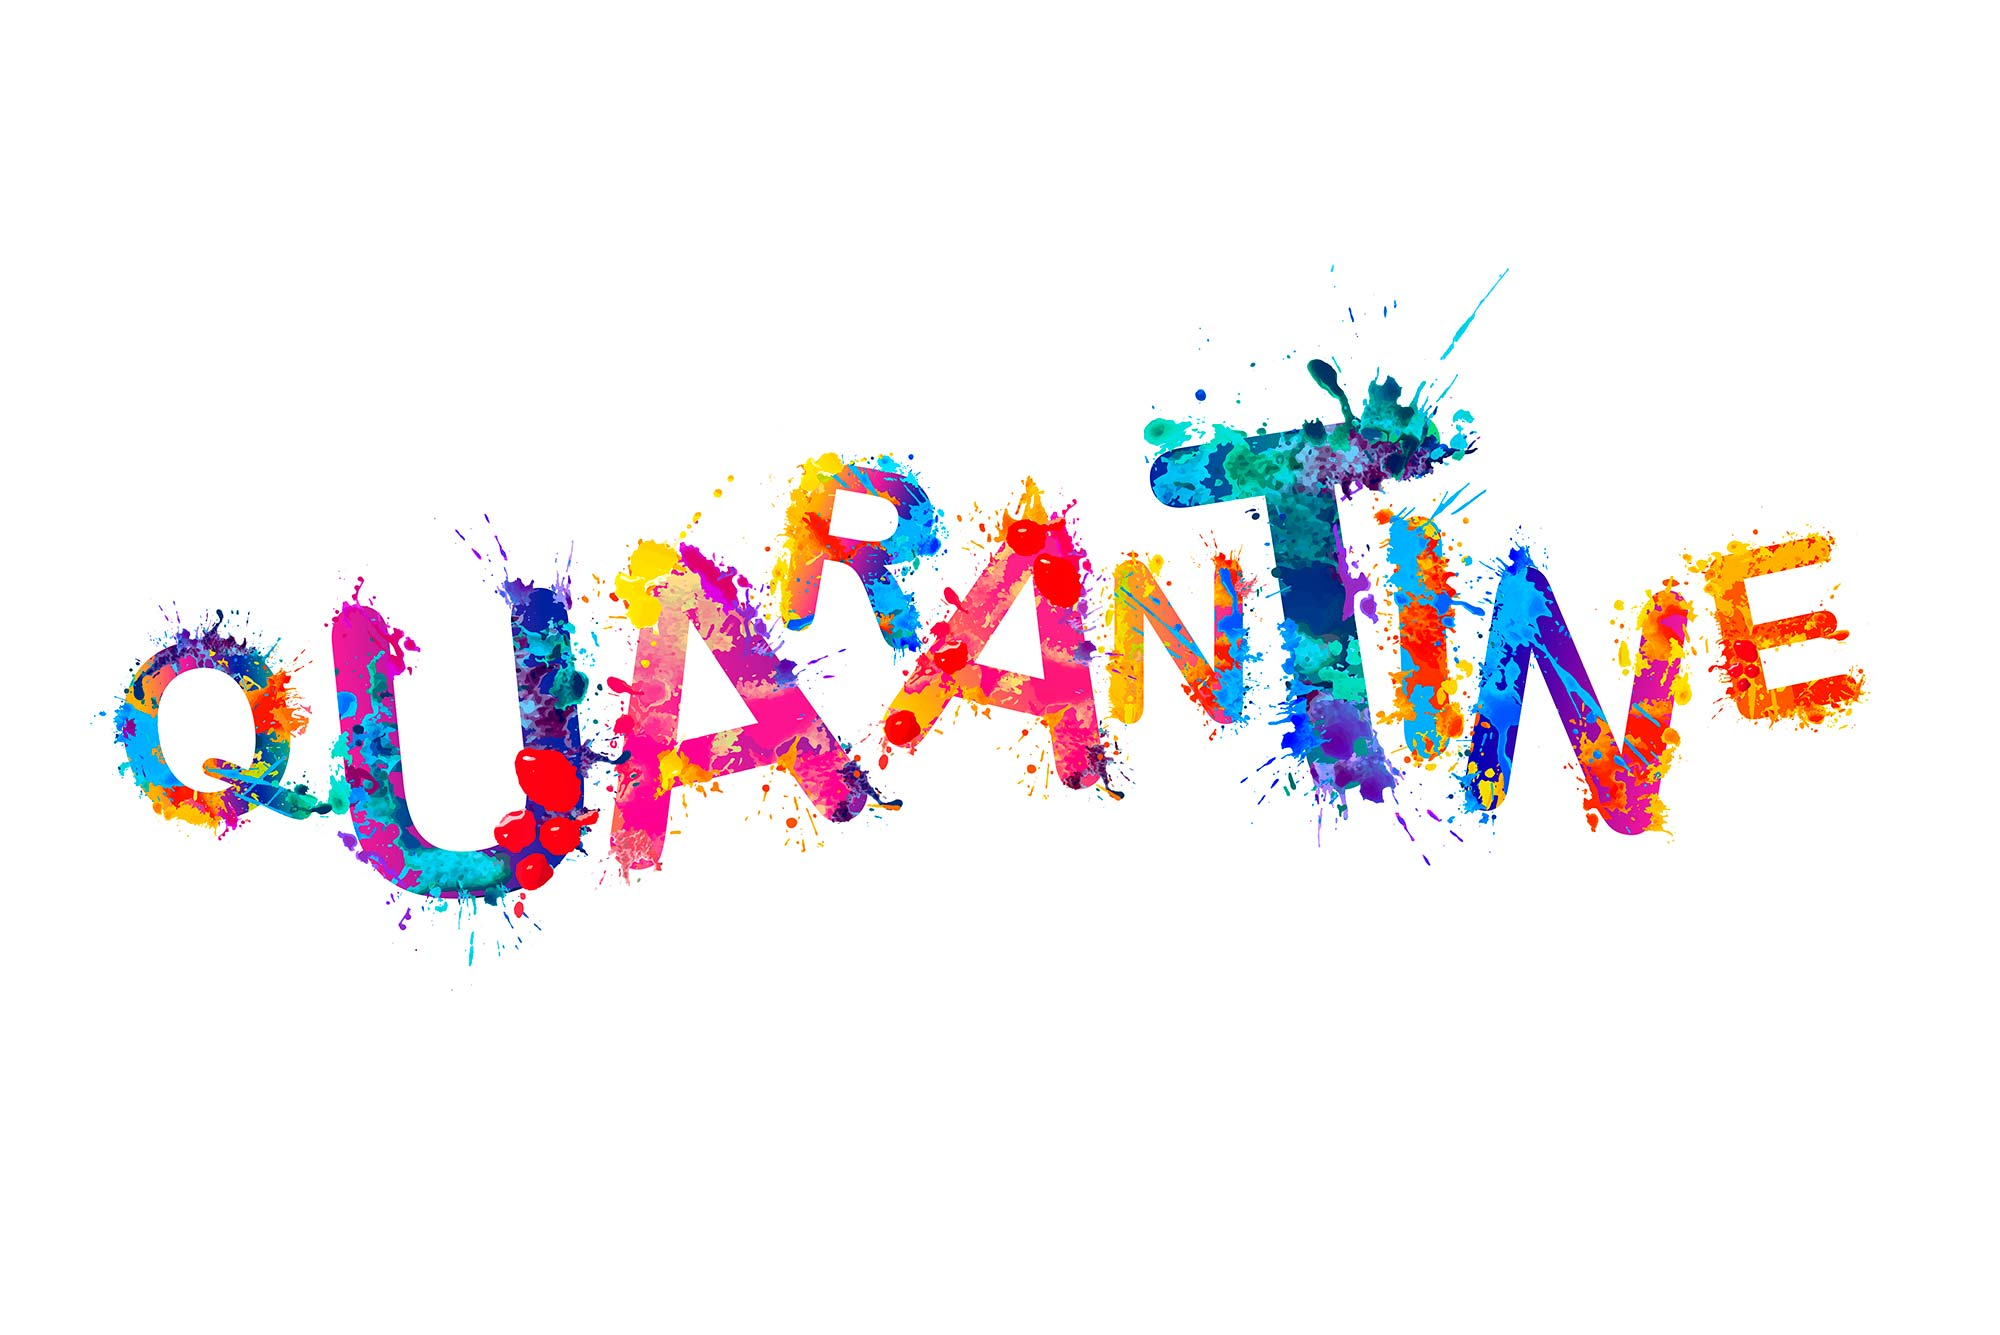 Illustrated type-treatment of the word 'Quarantine' in letters made of paint splatters